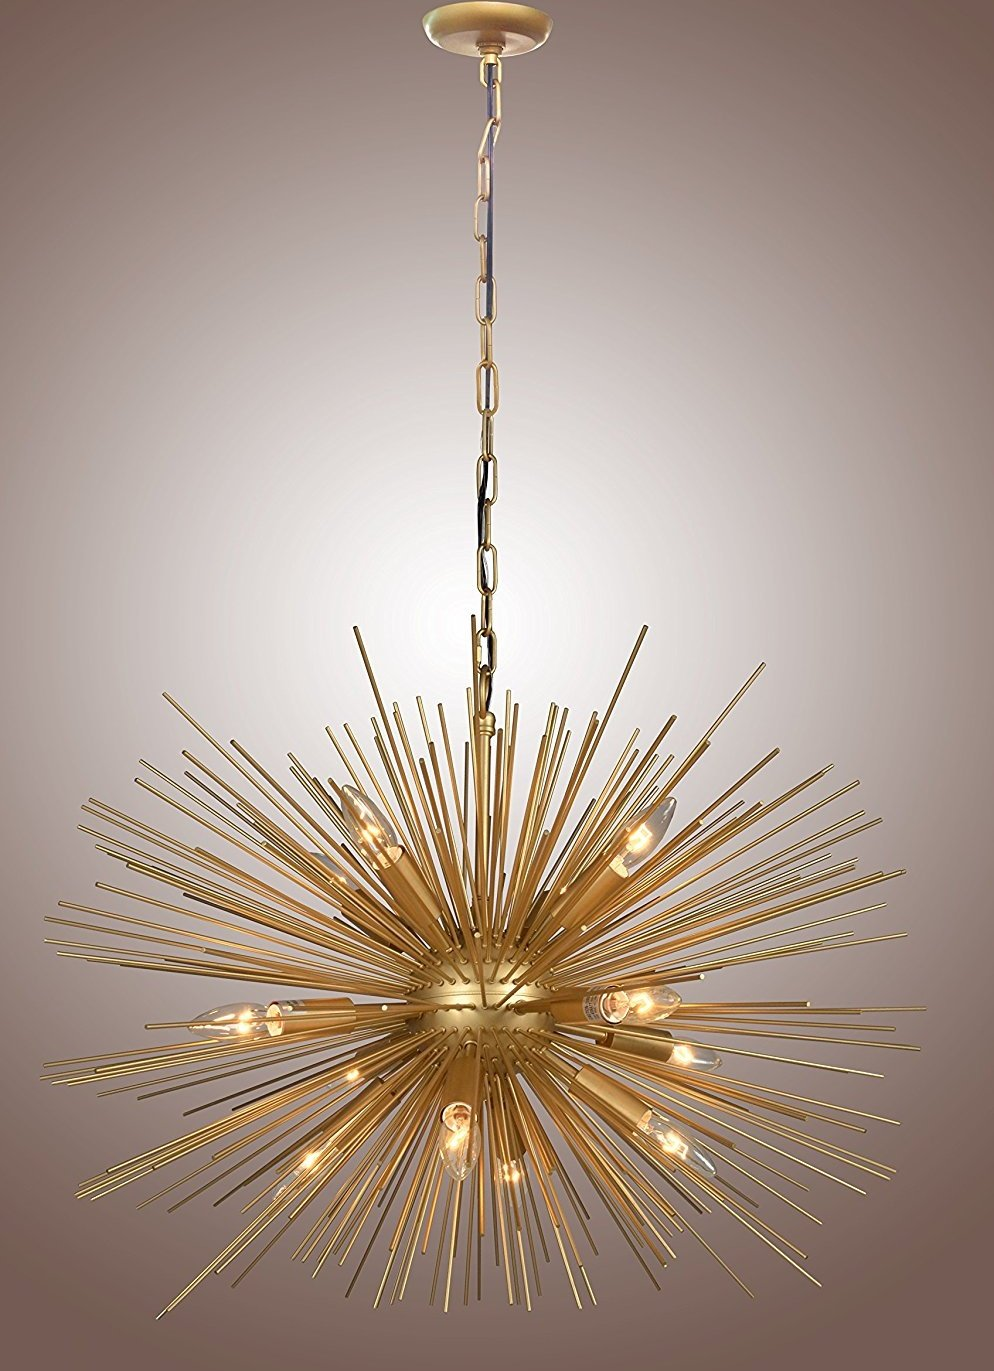 Decomust 30 Inch Astra Sputnik Satellite Pendant Light Chandelier Gold